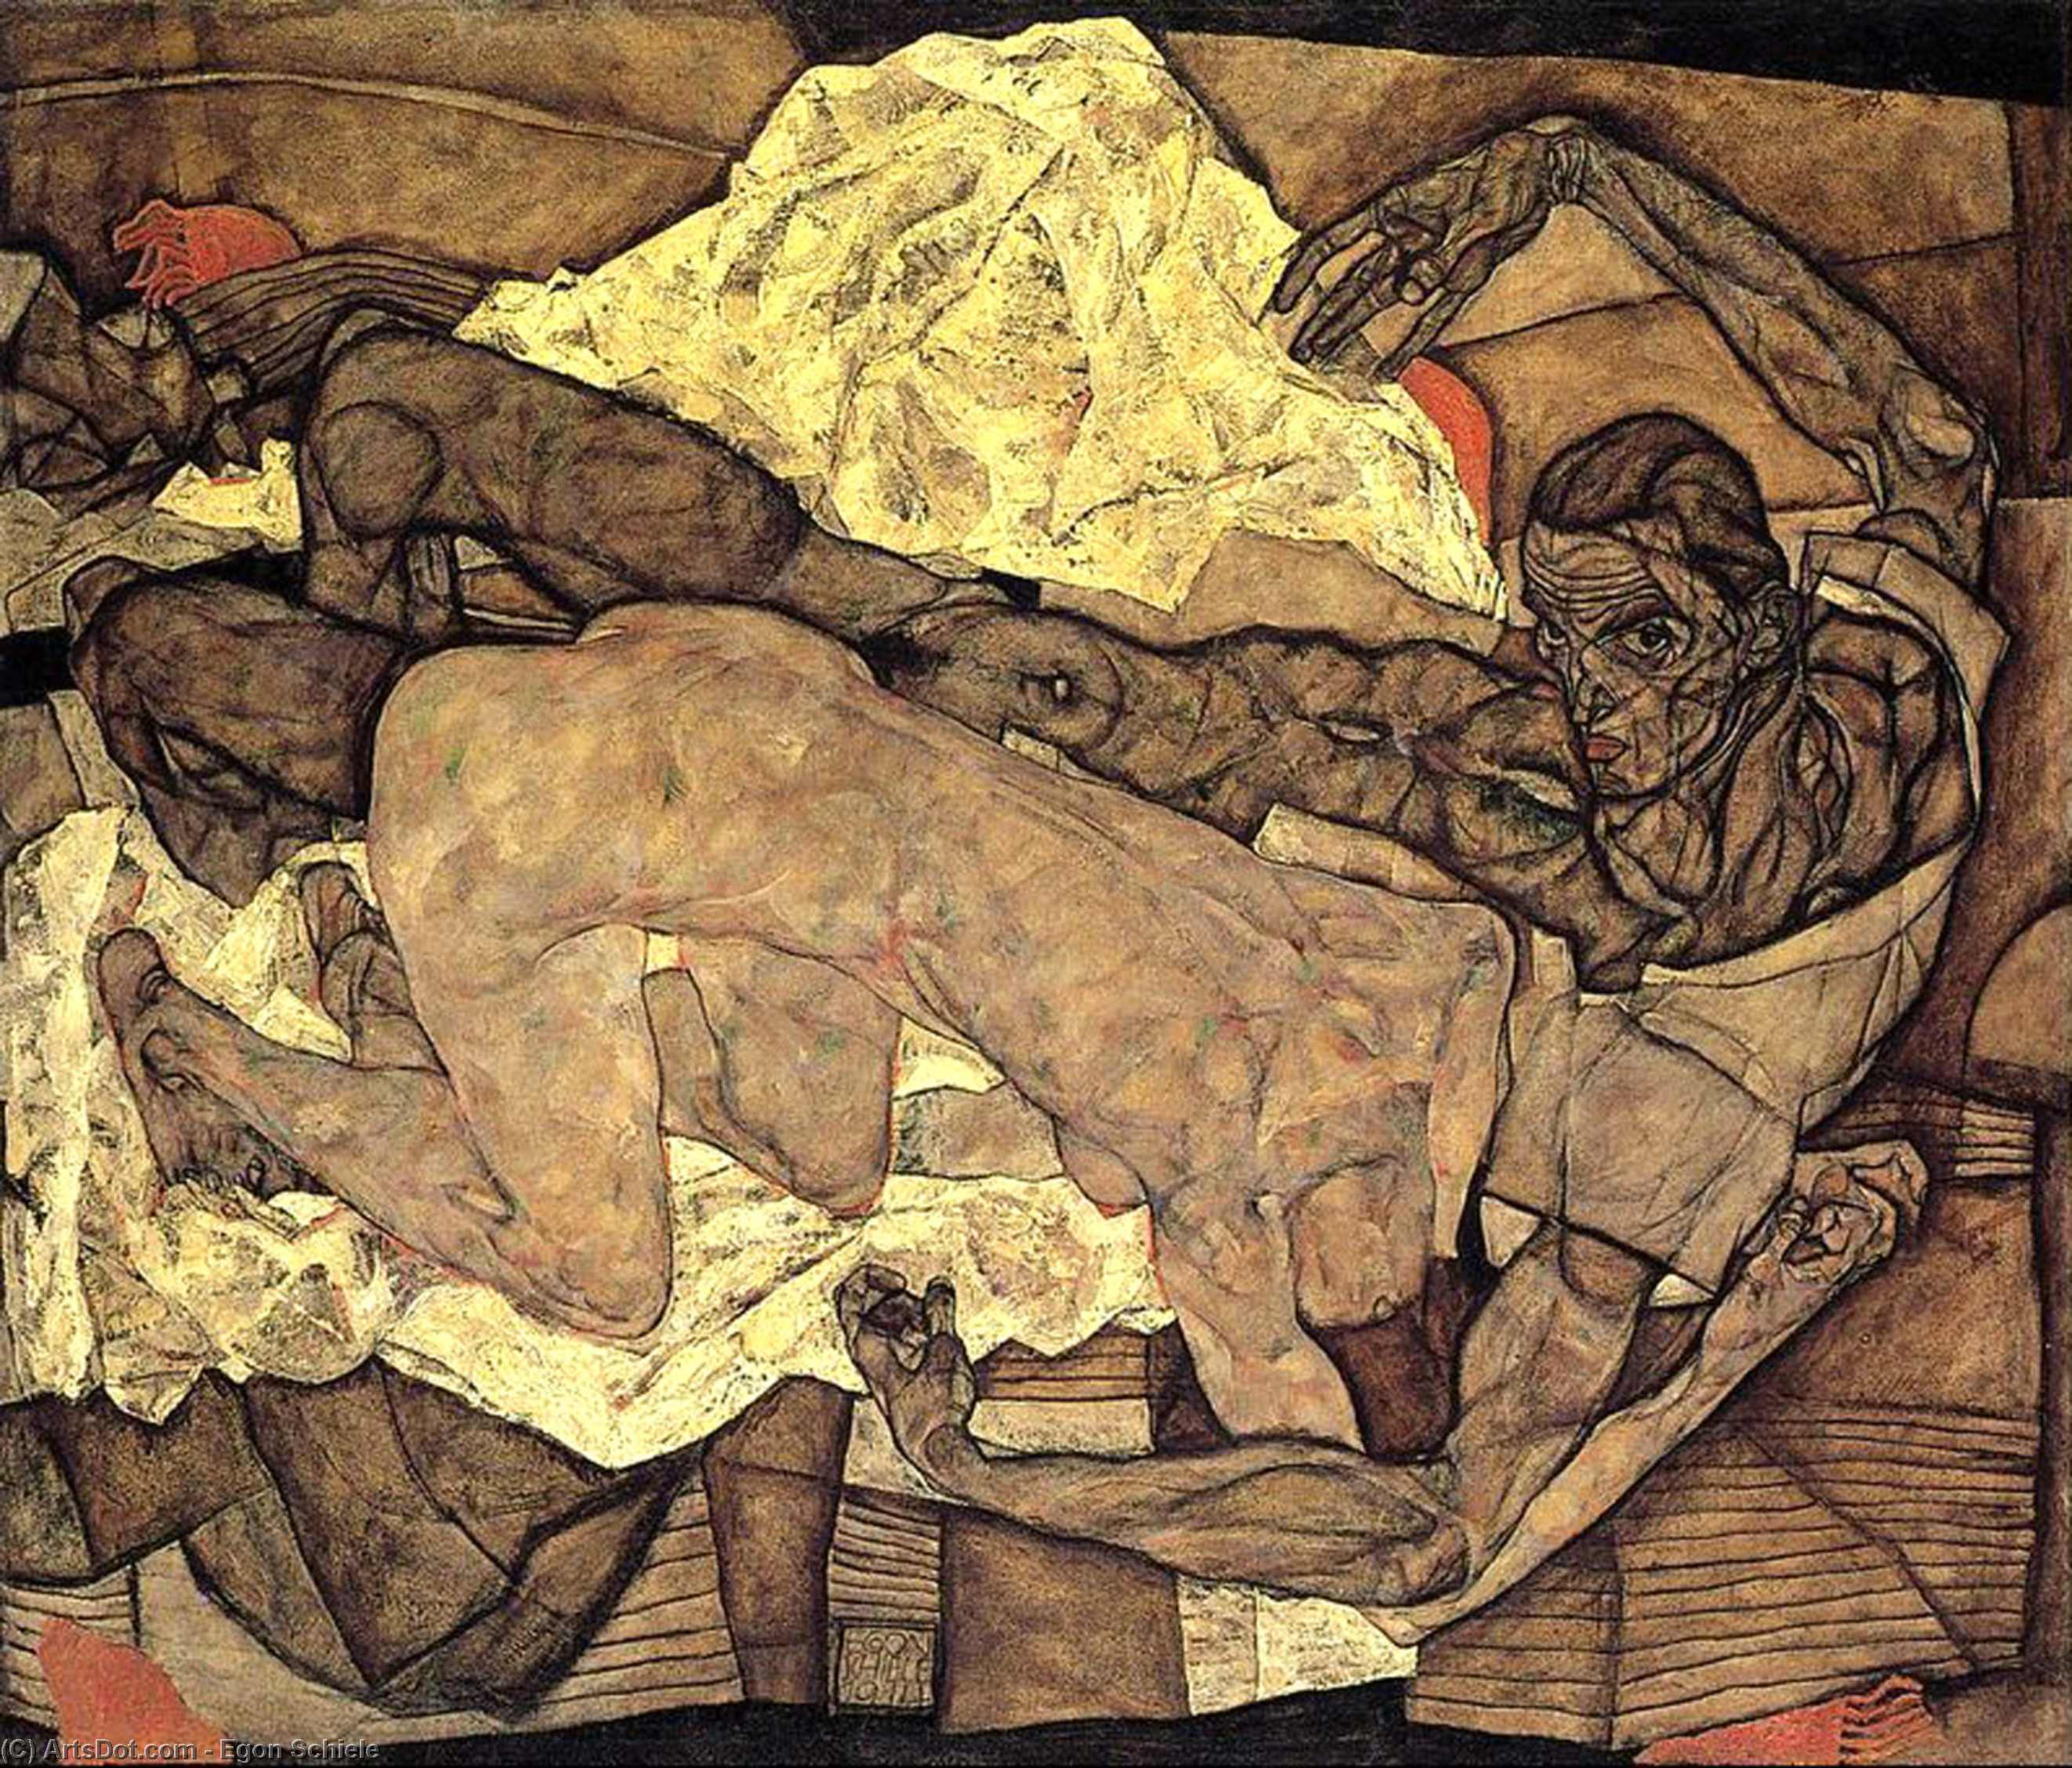 Order Paintings Reproductions | Lovers: Man and Woman I, 1914 by Egon Schiele (1890-1918, Croatia) | ArtsDot.com